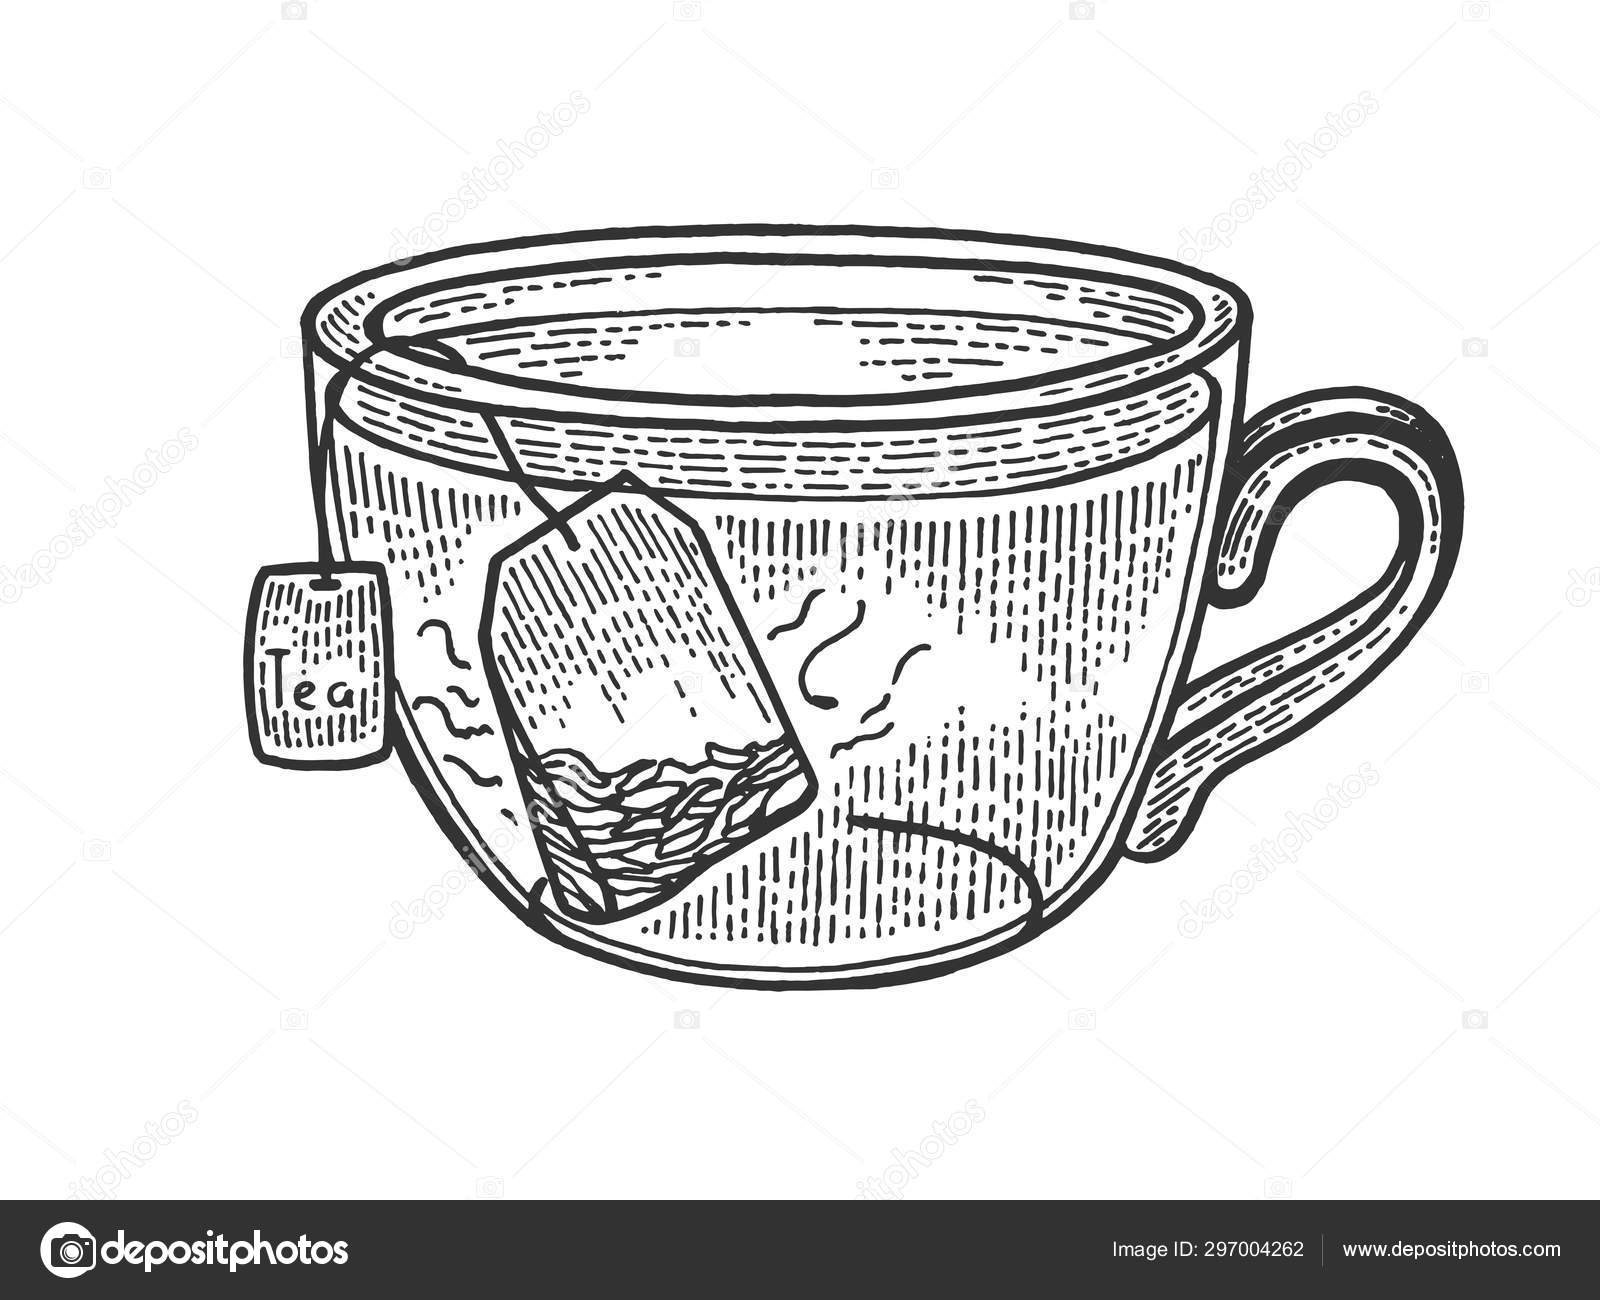 Cup Of Tea With Tea Bag Sketch Engraving Vector Illustration Scratch Board Style Imitation Black And White Hand Drawn Image Stock Vector C Alexanderpokusay 297004262